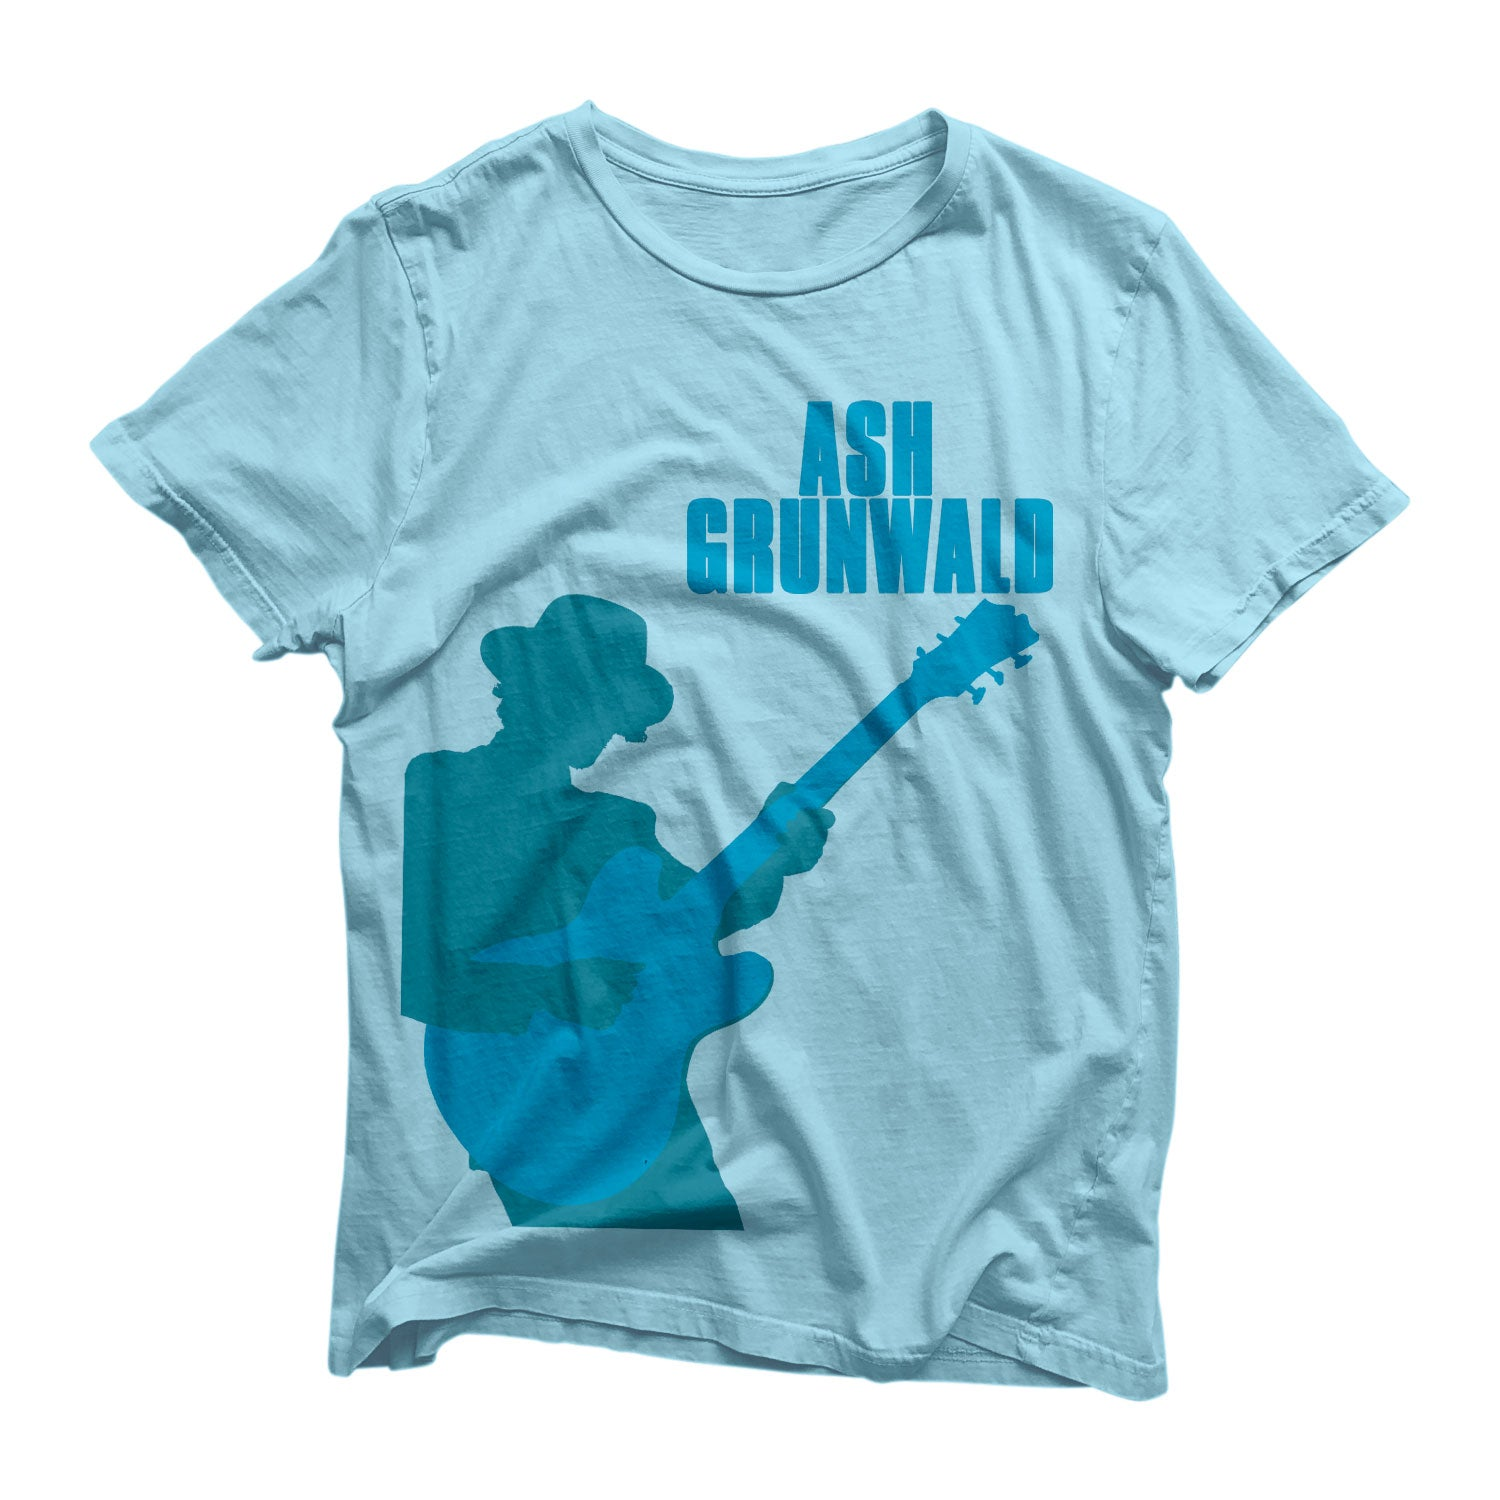 Ash Grunwald T-Shirt - kids sizes -  Baby Blue